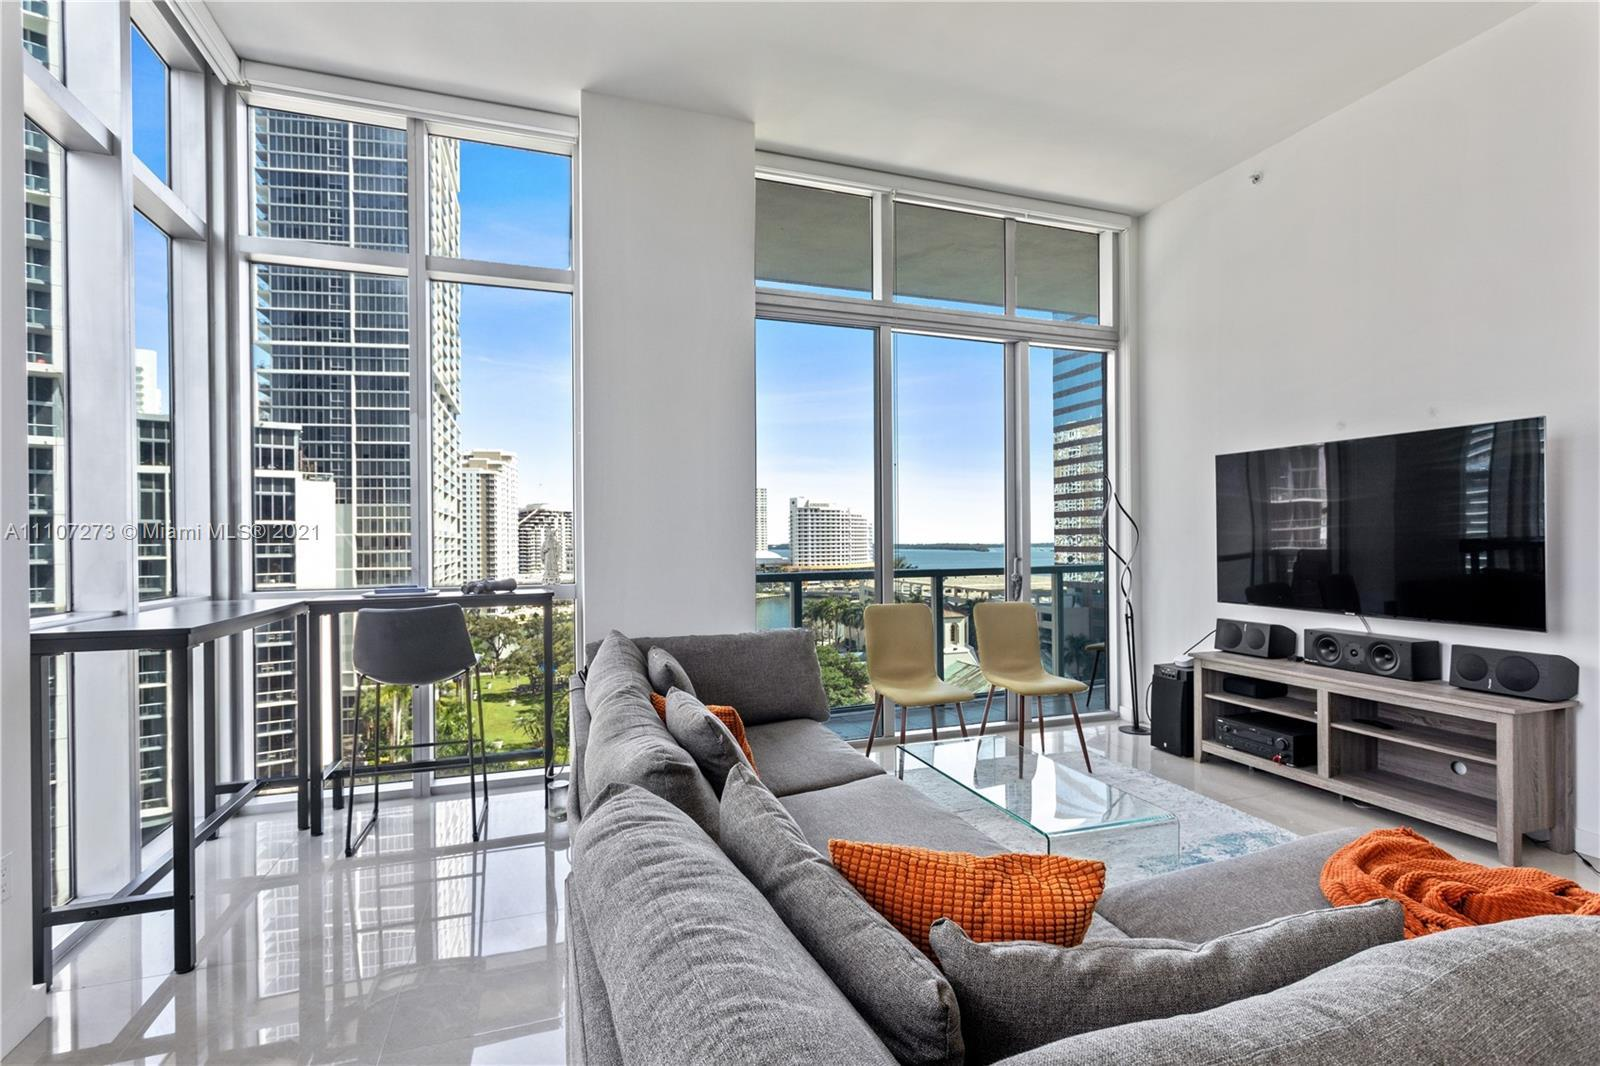 Don't look any further this is it! Very unique and one of a kind 2 bed condo with magnificent unobst